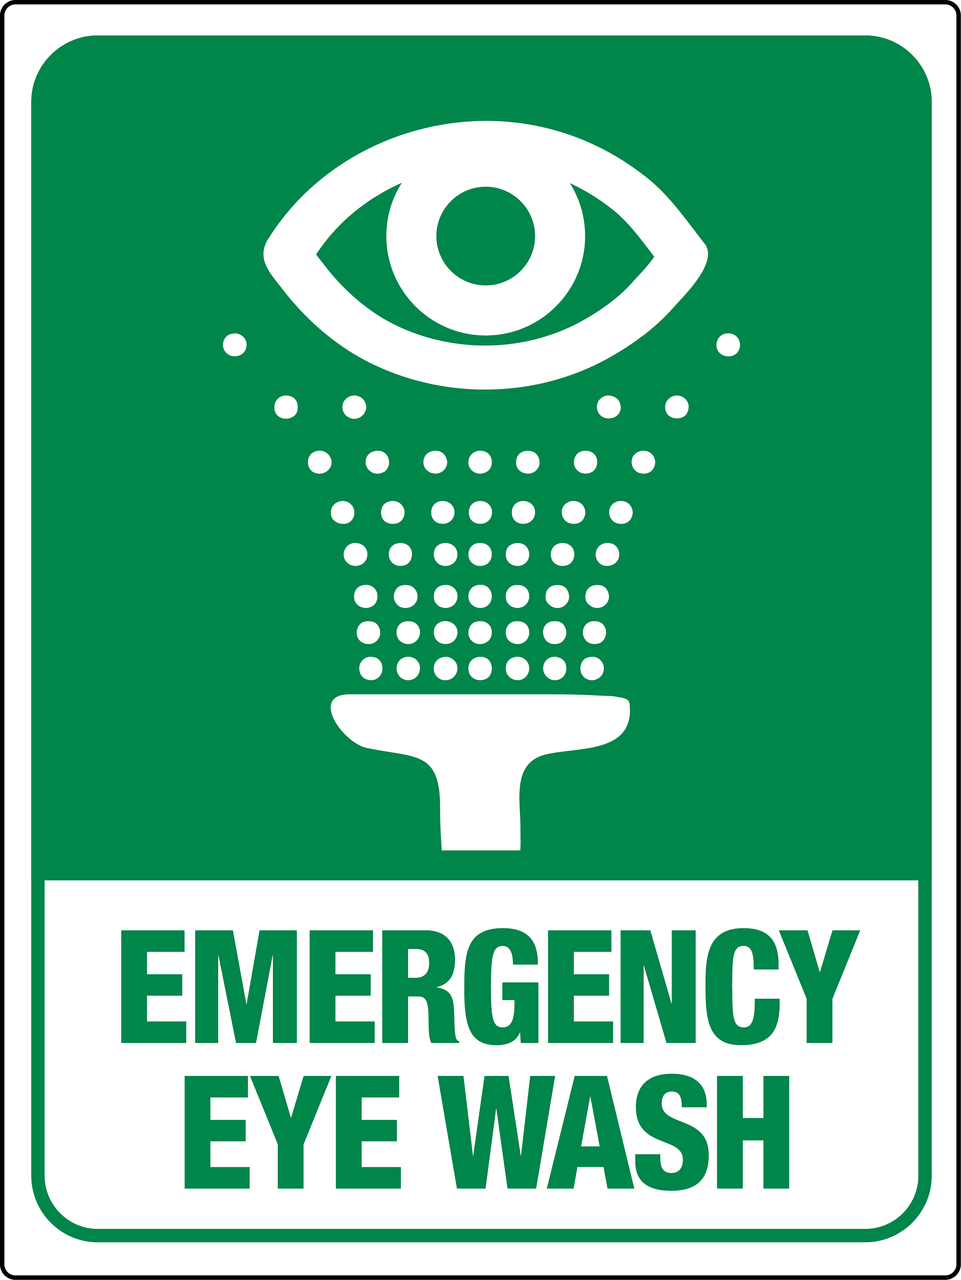 Emergency Eye Wash Station Wall Sign  Phs Safety. Medical Computer Systems Divorce Legal Advice. University Of Washington Travel. University Of Florida Admissions Requirements. Civil Engineer Resume Example. Ssl Certificate Low Cost Income Tax Accounts. Video Production Charlotte Nc. Purchasing System Flowchart Cisco Ws X5225r. Online University Computer Science